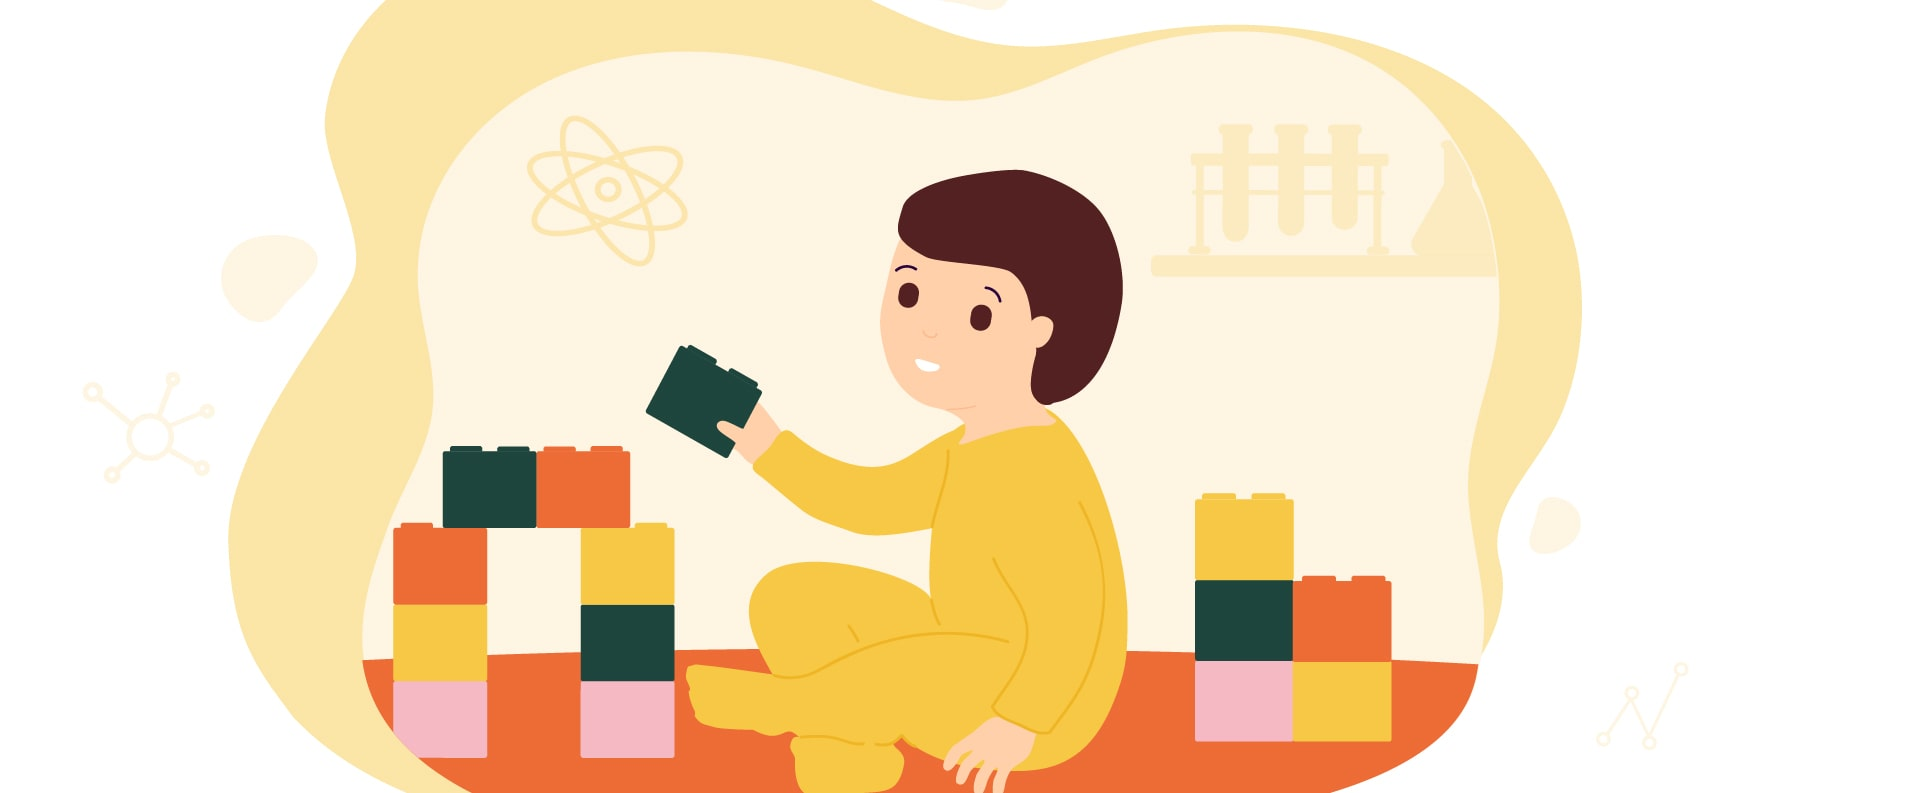 Tomorrow's top scientists are playing with wooden blocks